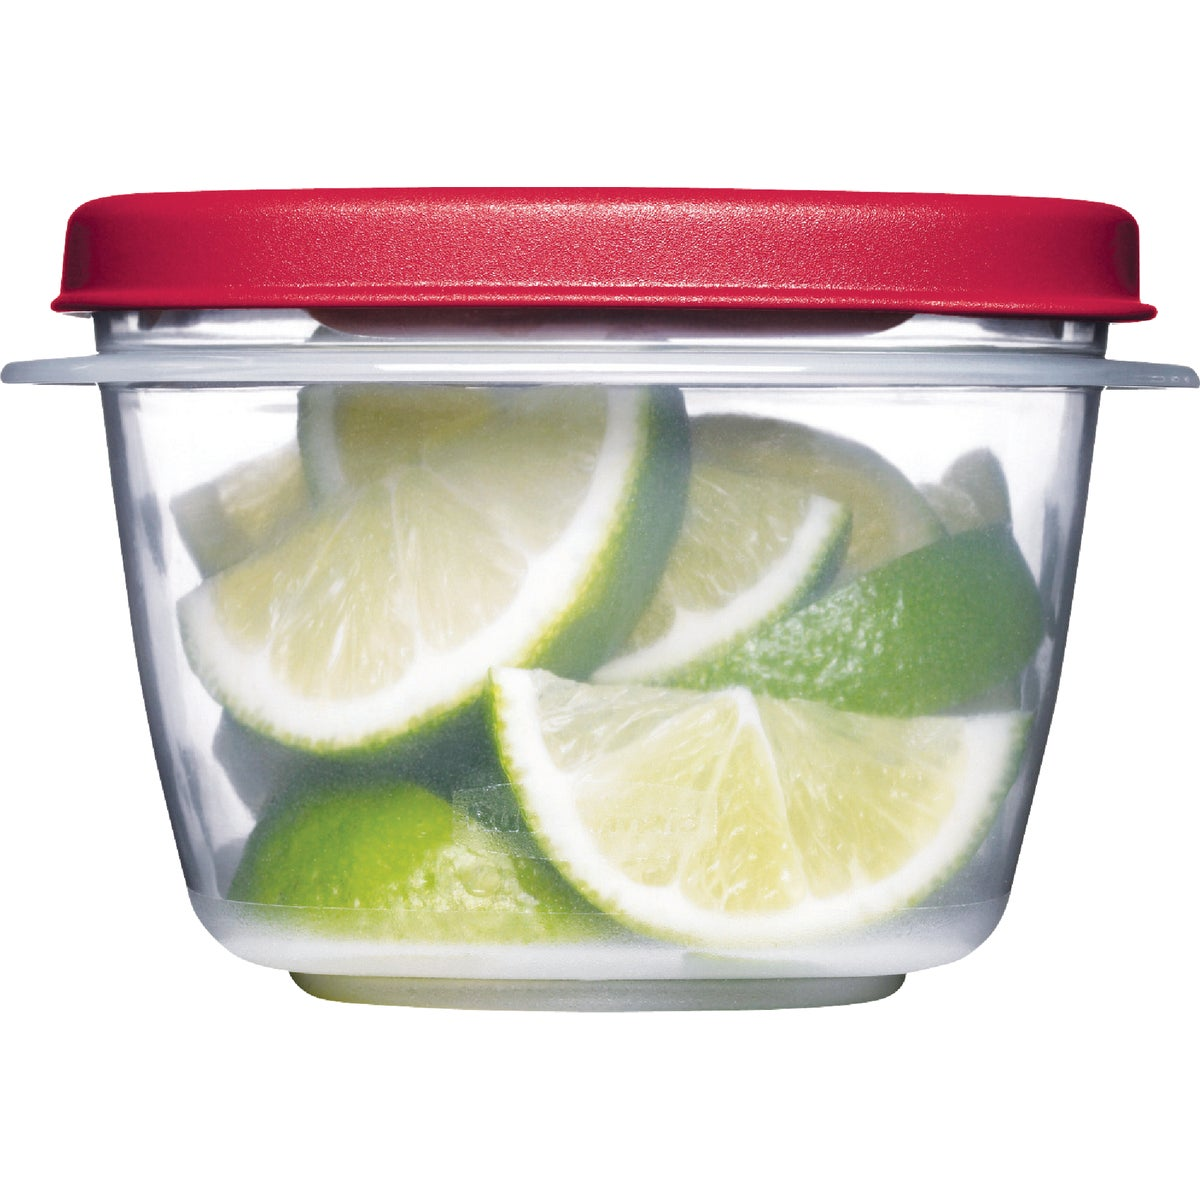 2 CUP FOOD CONTAINER